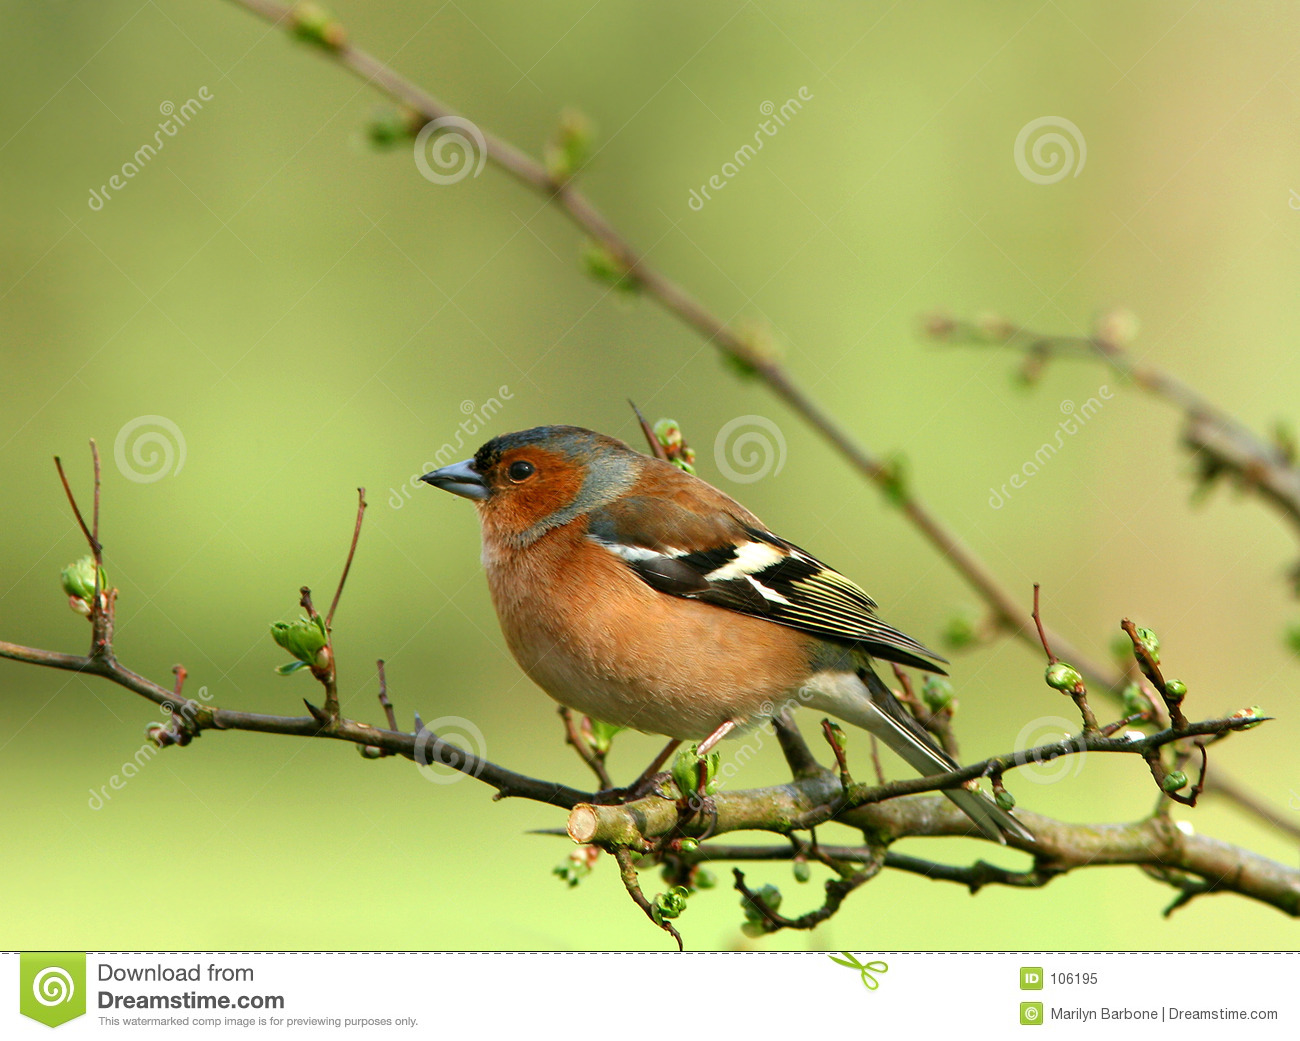 Le Chaffinch